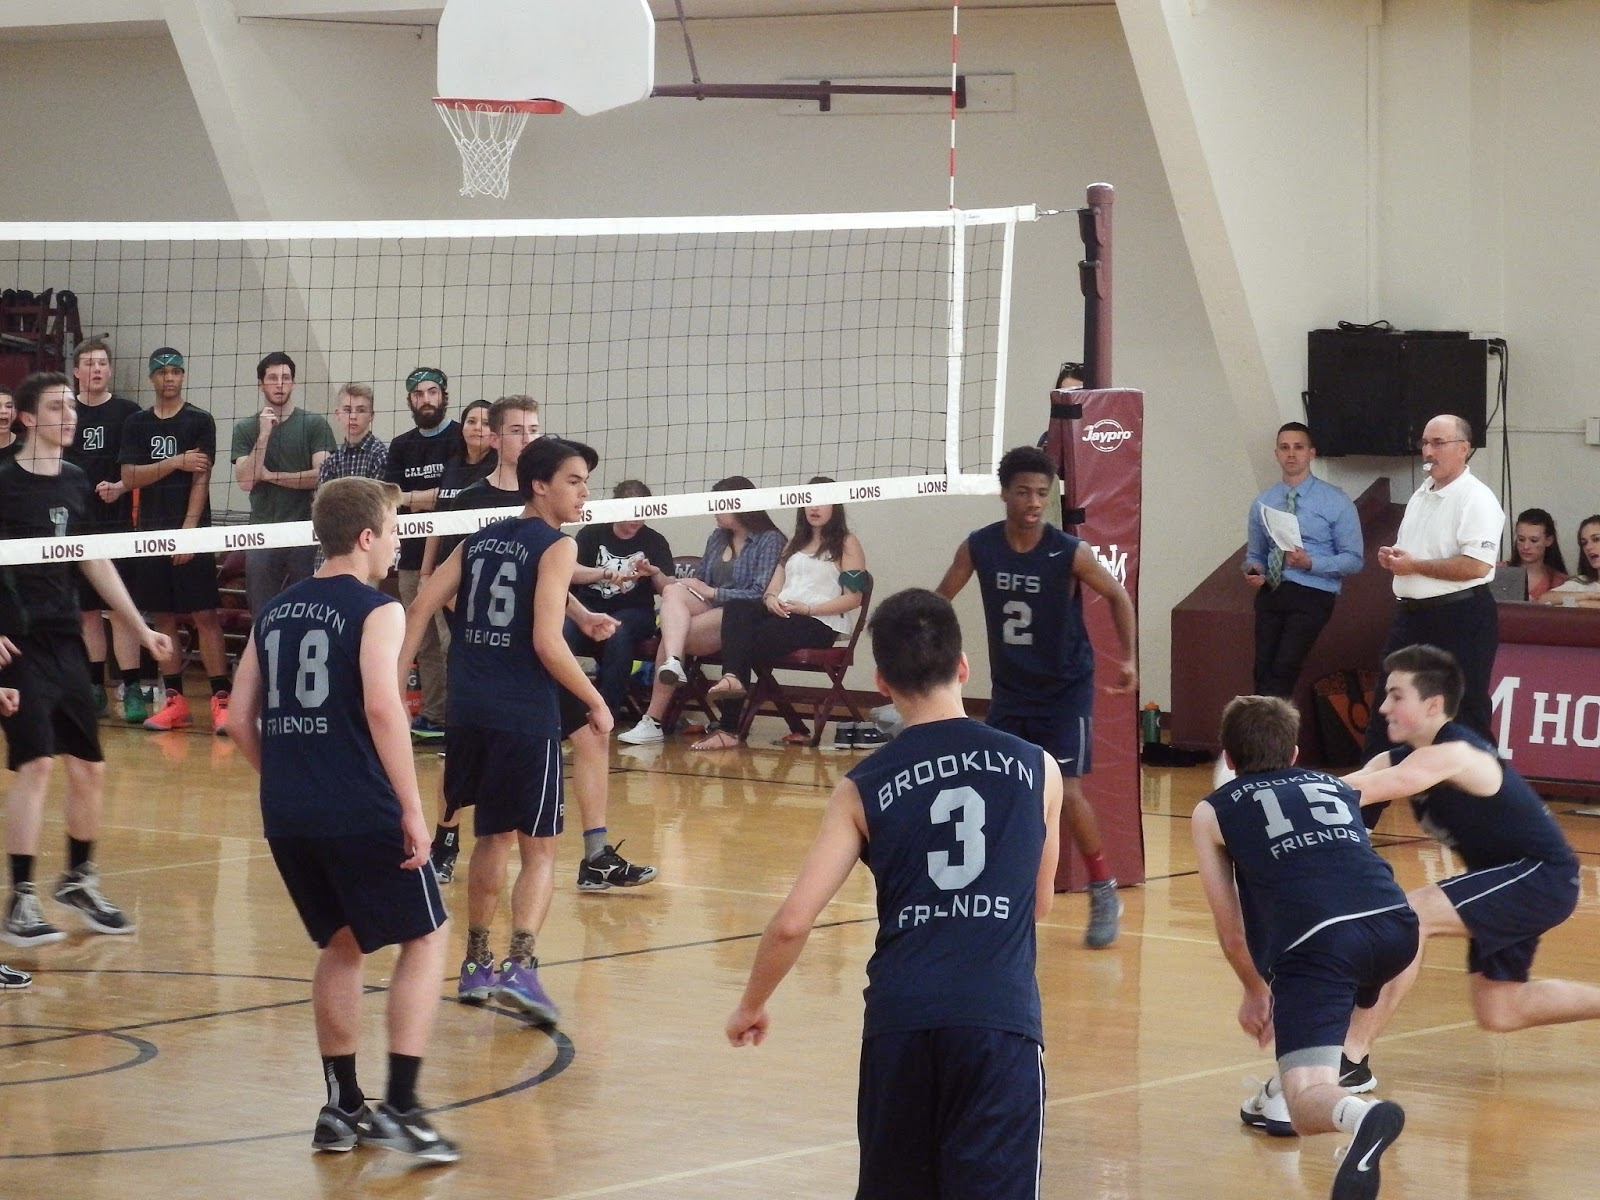 BFS Boys Varsity Volleyball team